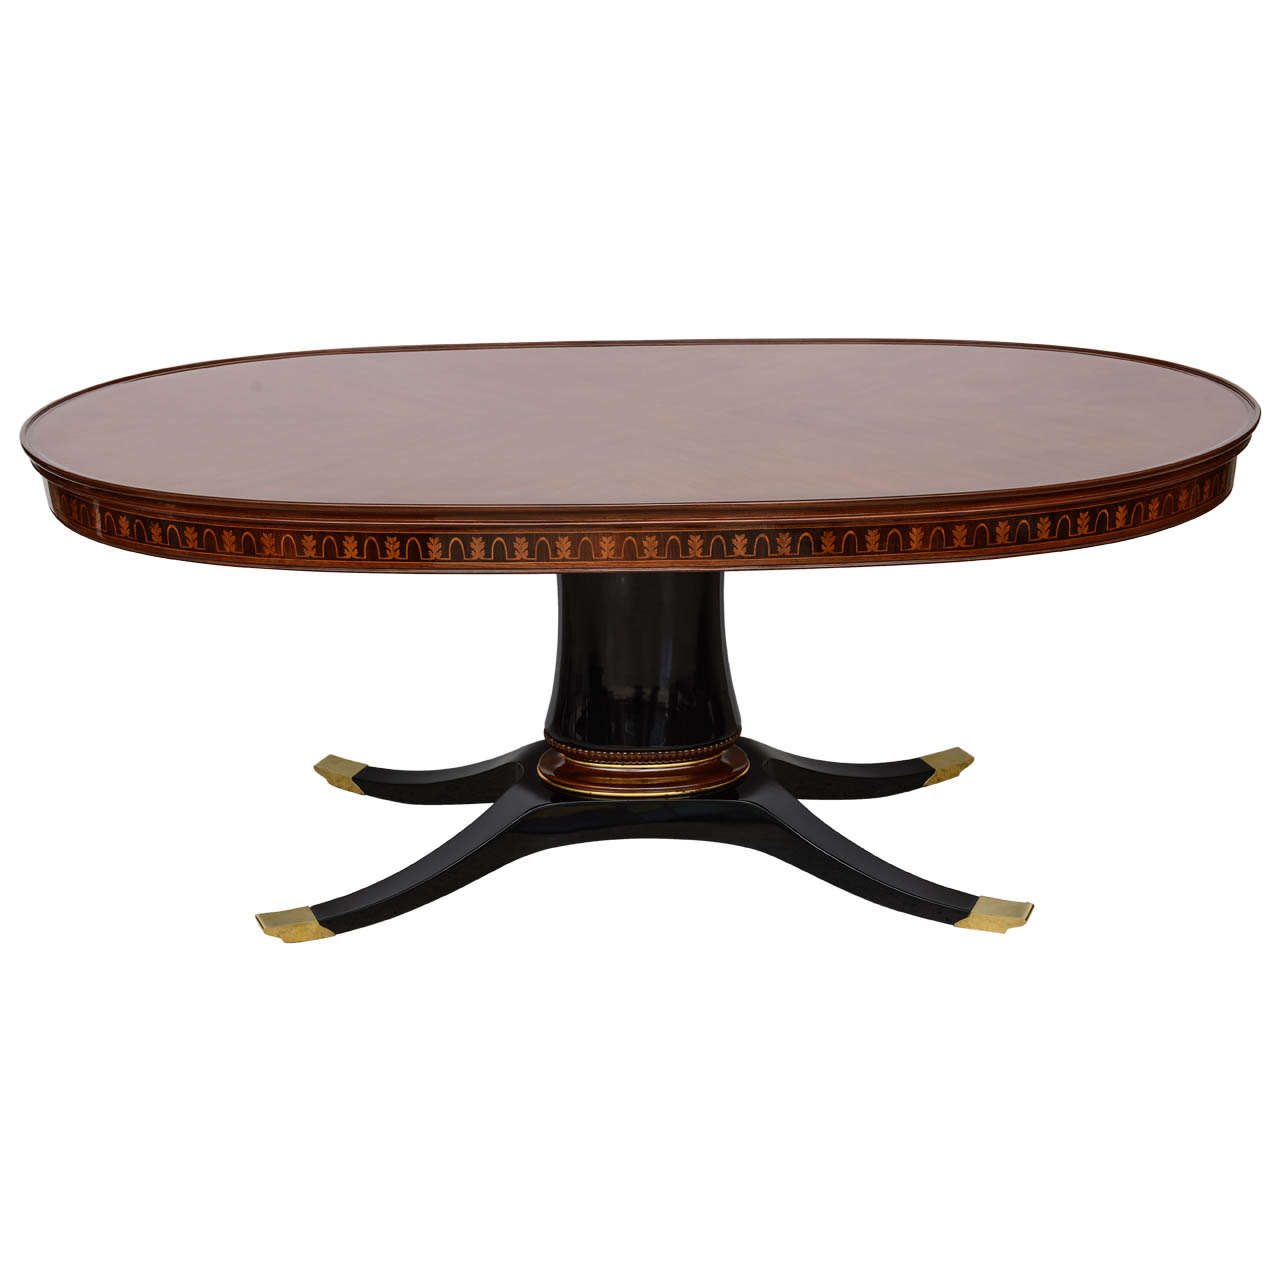 An italian modern dining table library table paolo buffa for Italian dining table